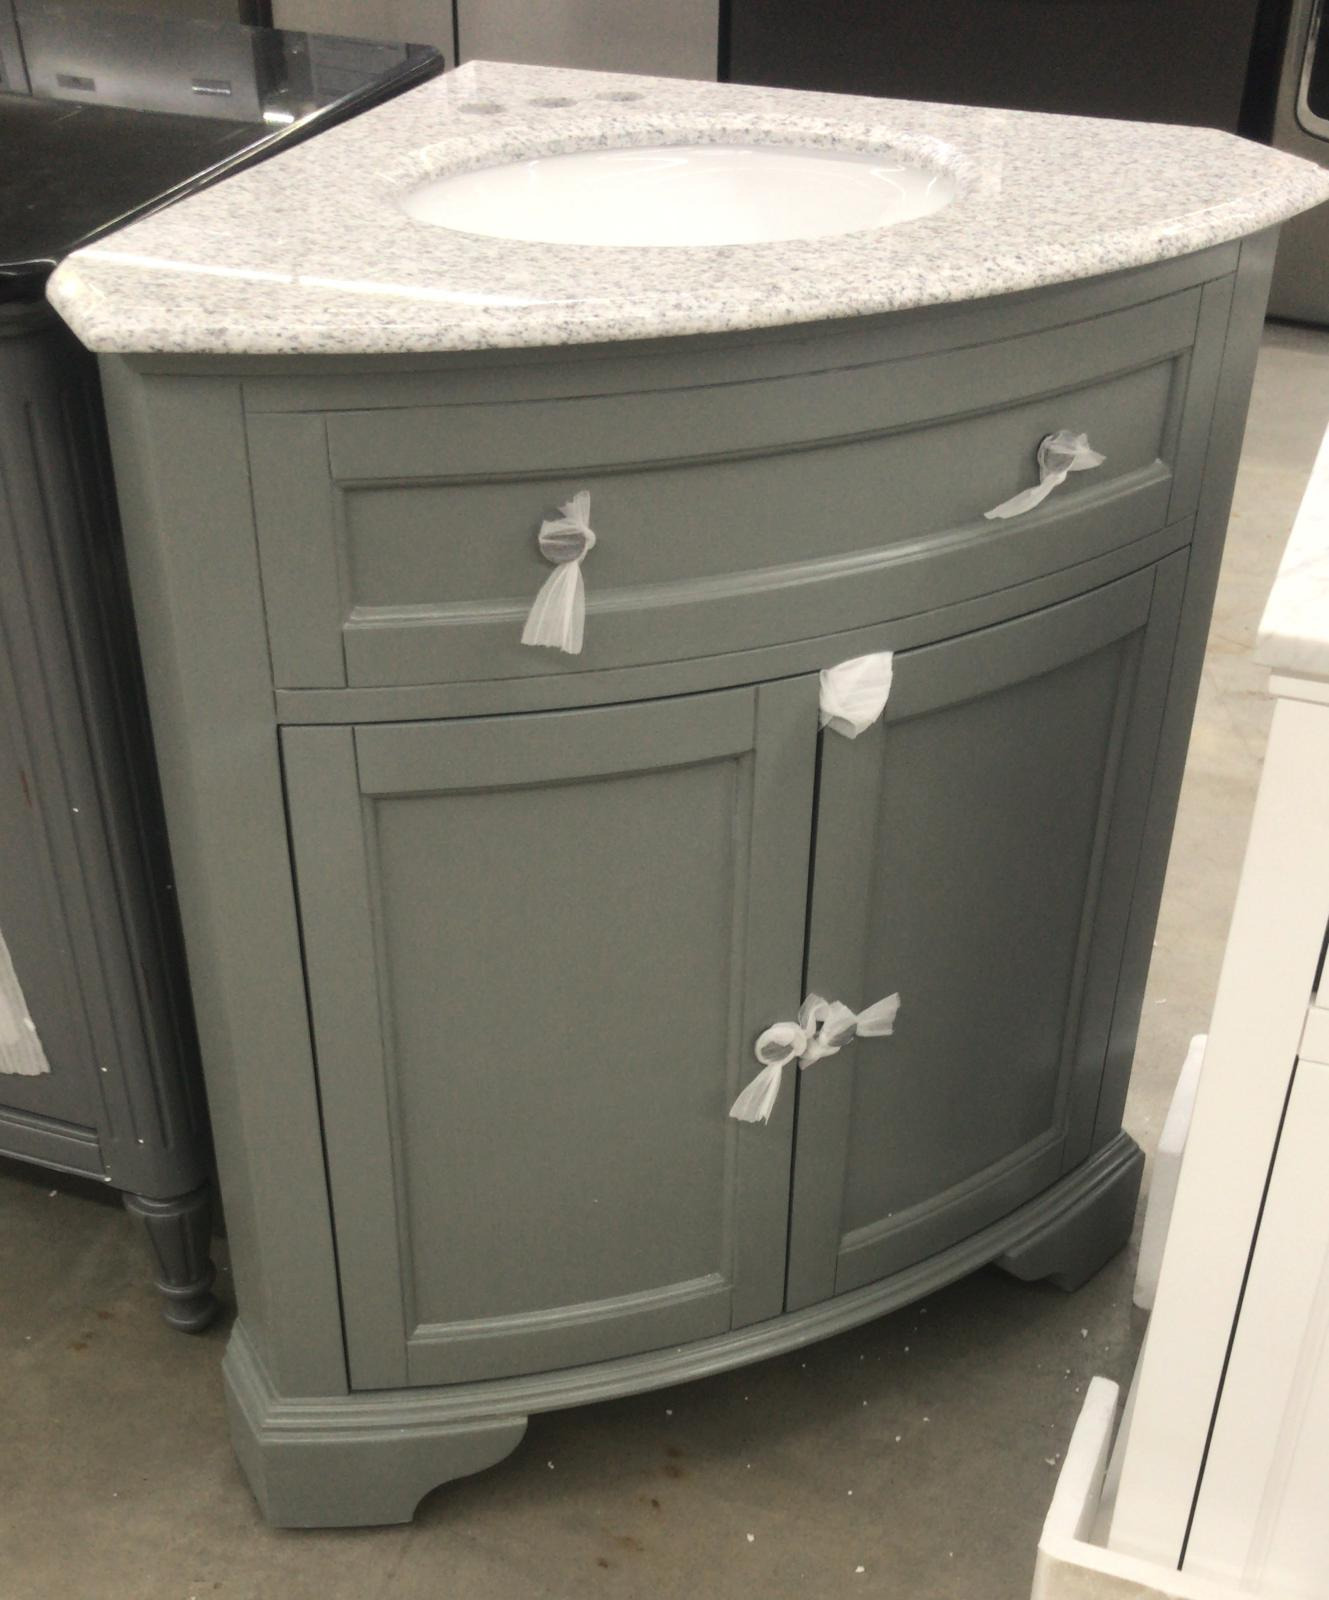 home decorators collection hamilton 31 in w x 23 in d corner bath vanity in grey with granite vanity top in grey with white basin